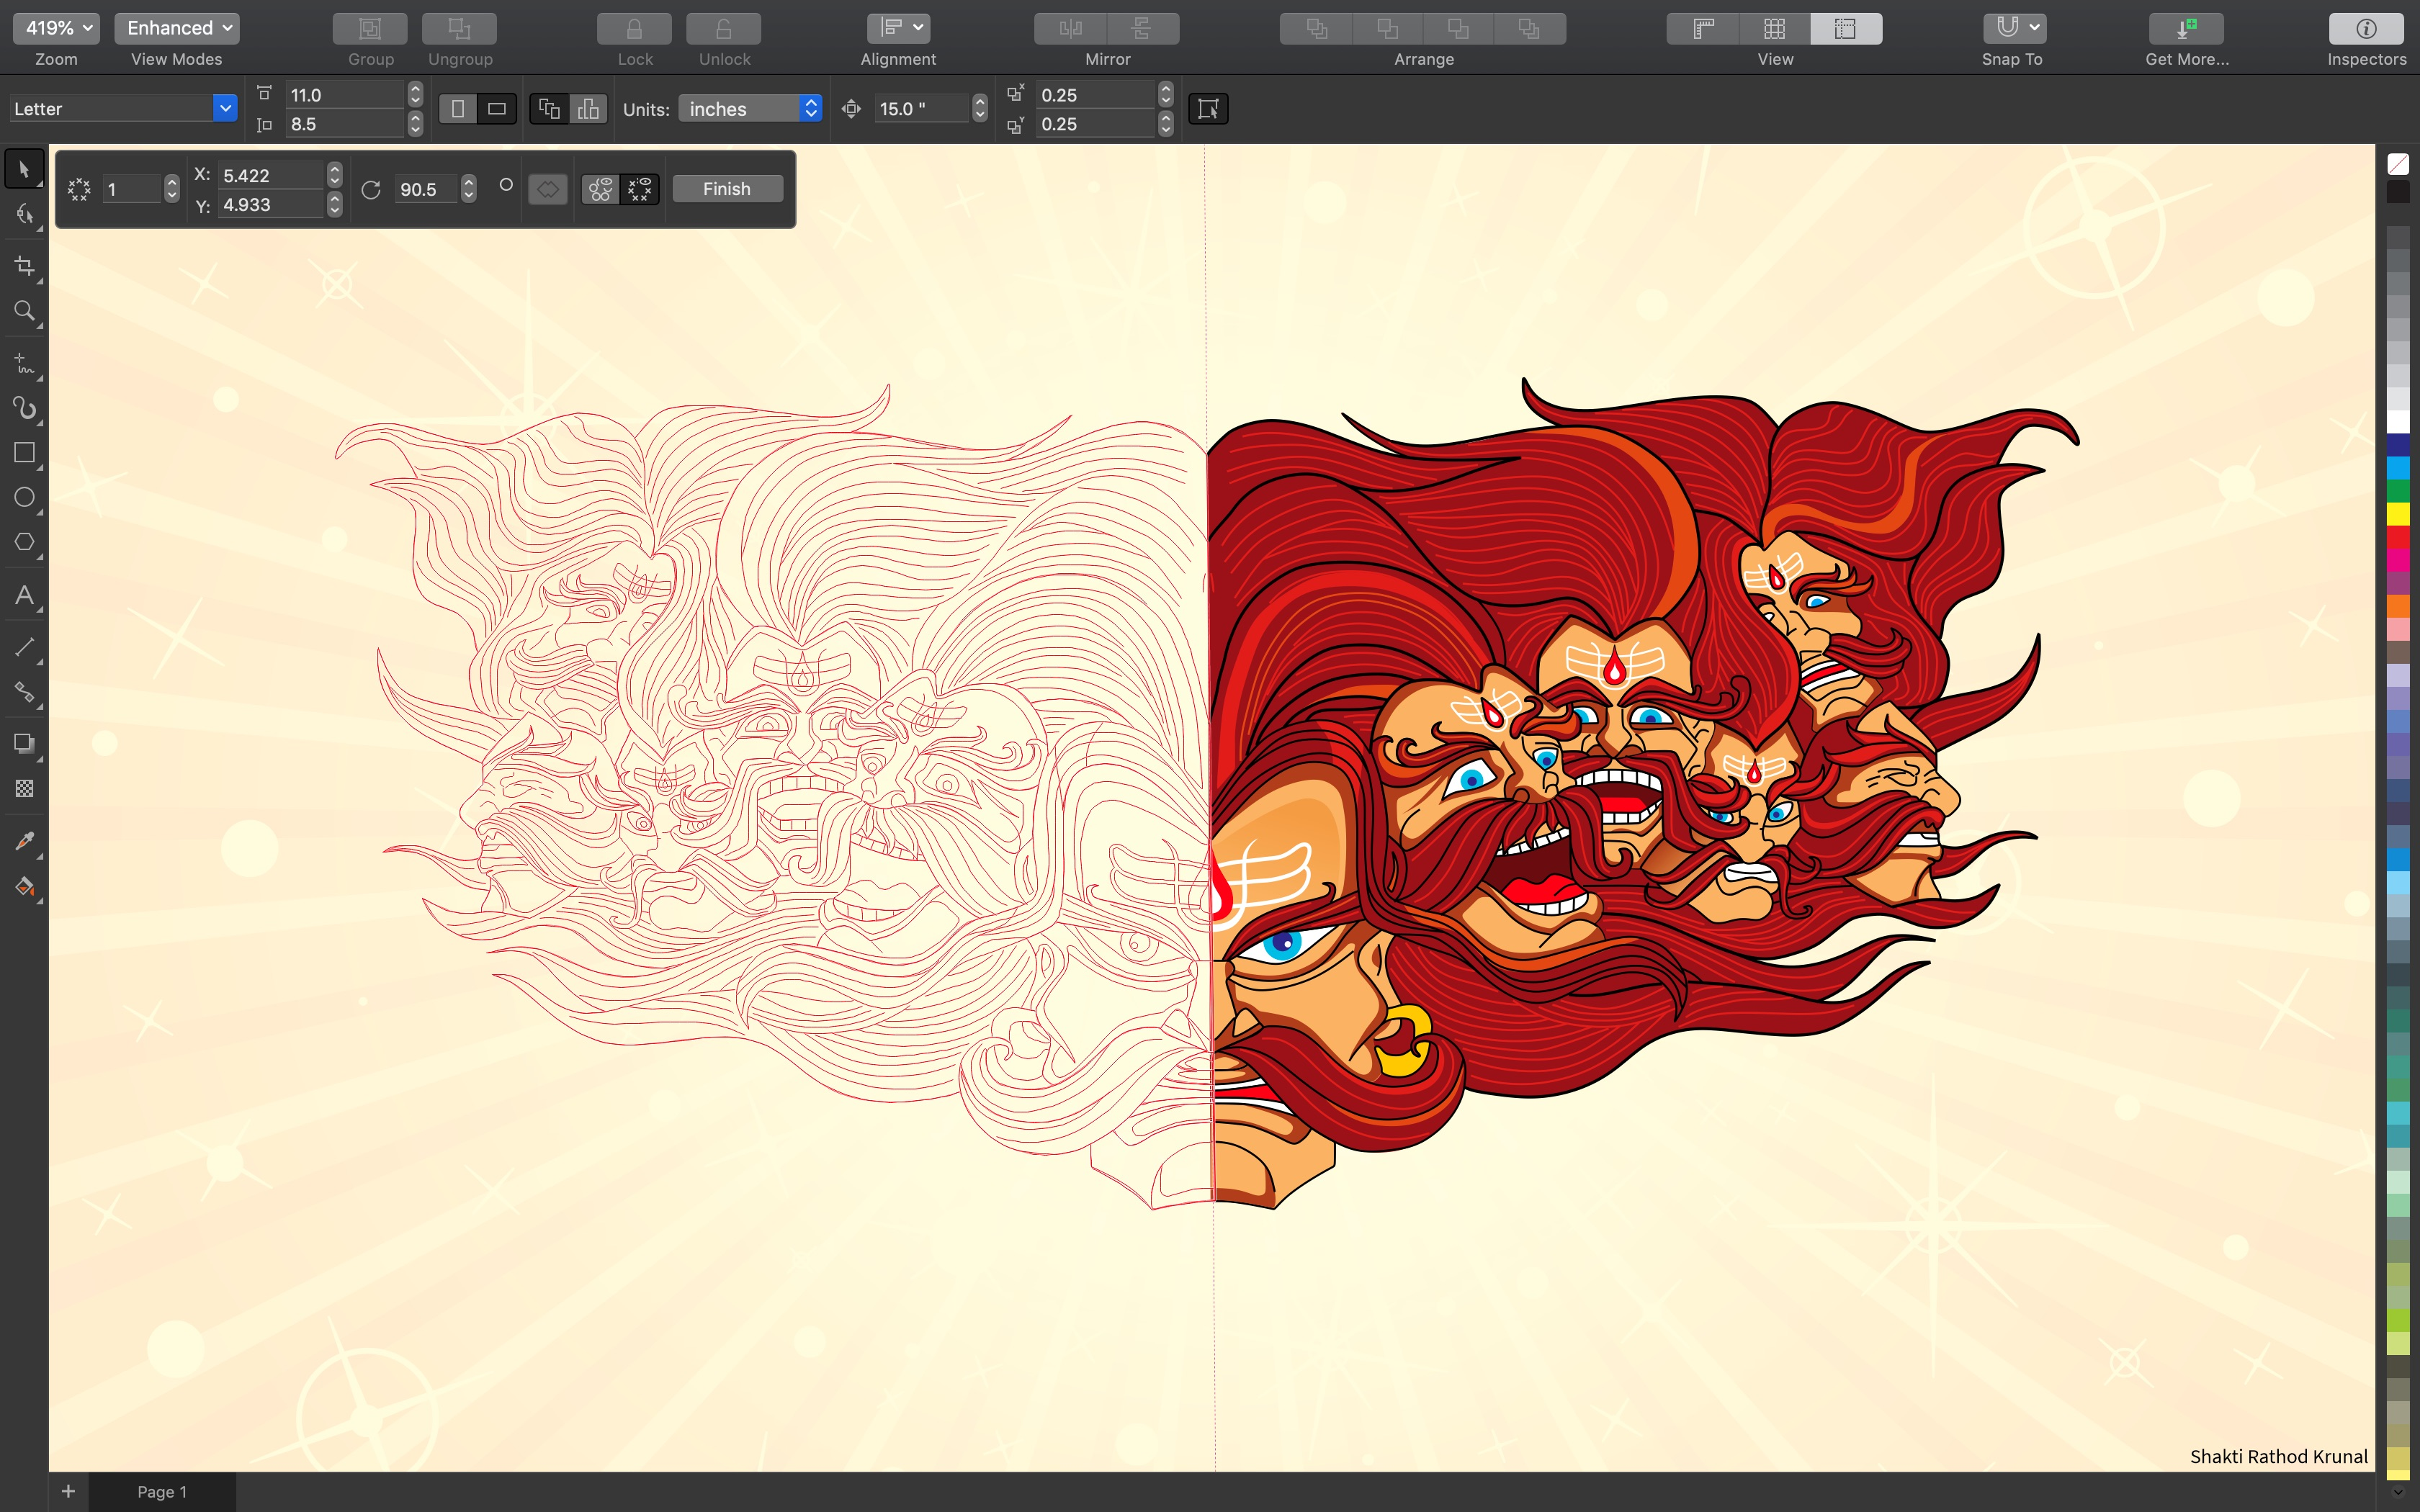 CorelDRAW Graphics Suite 2019 comes to Mac with Mojave